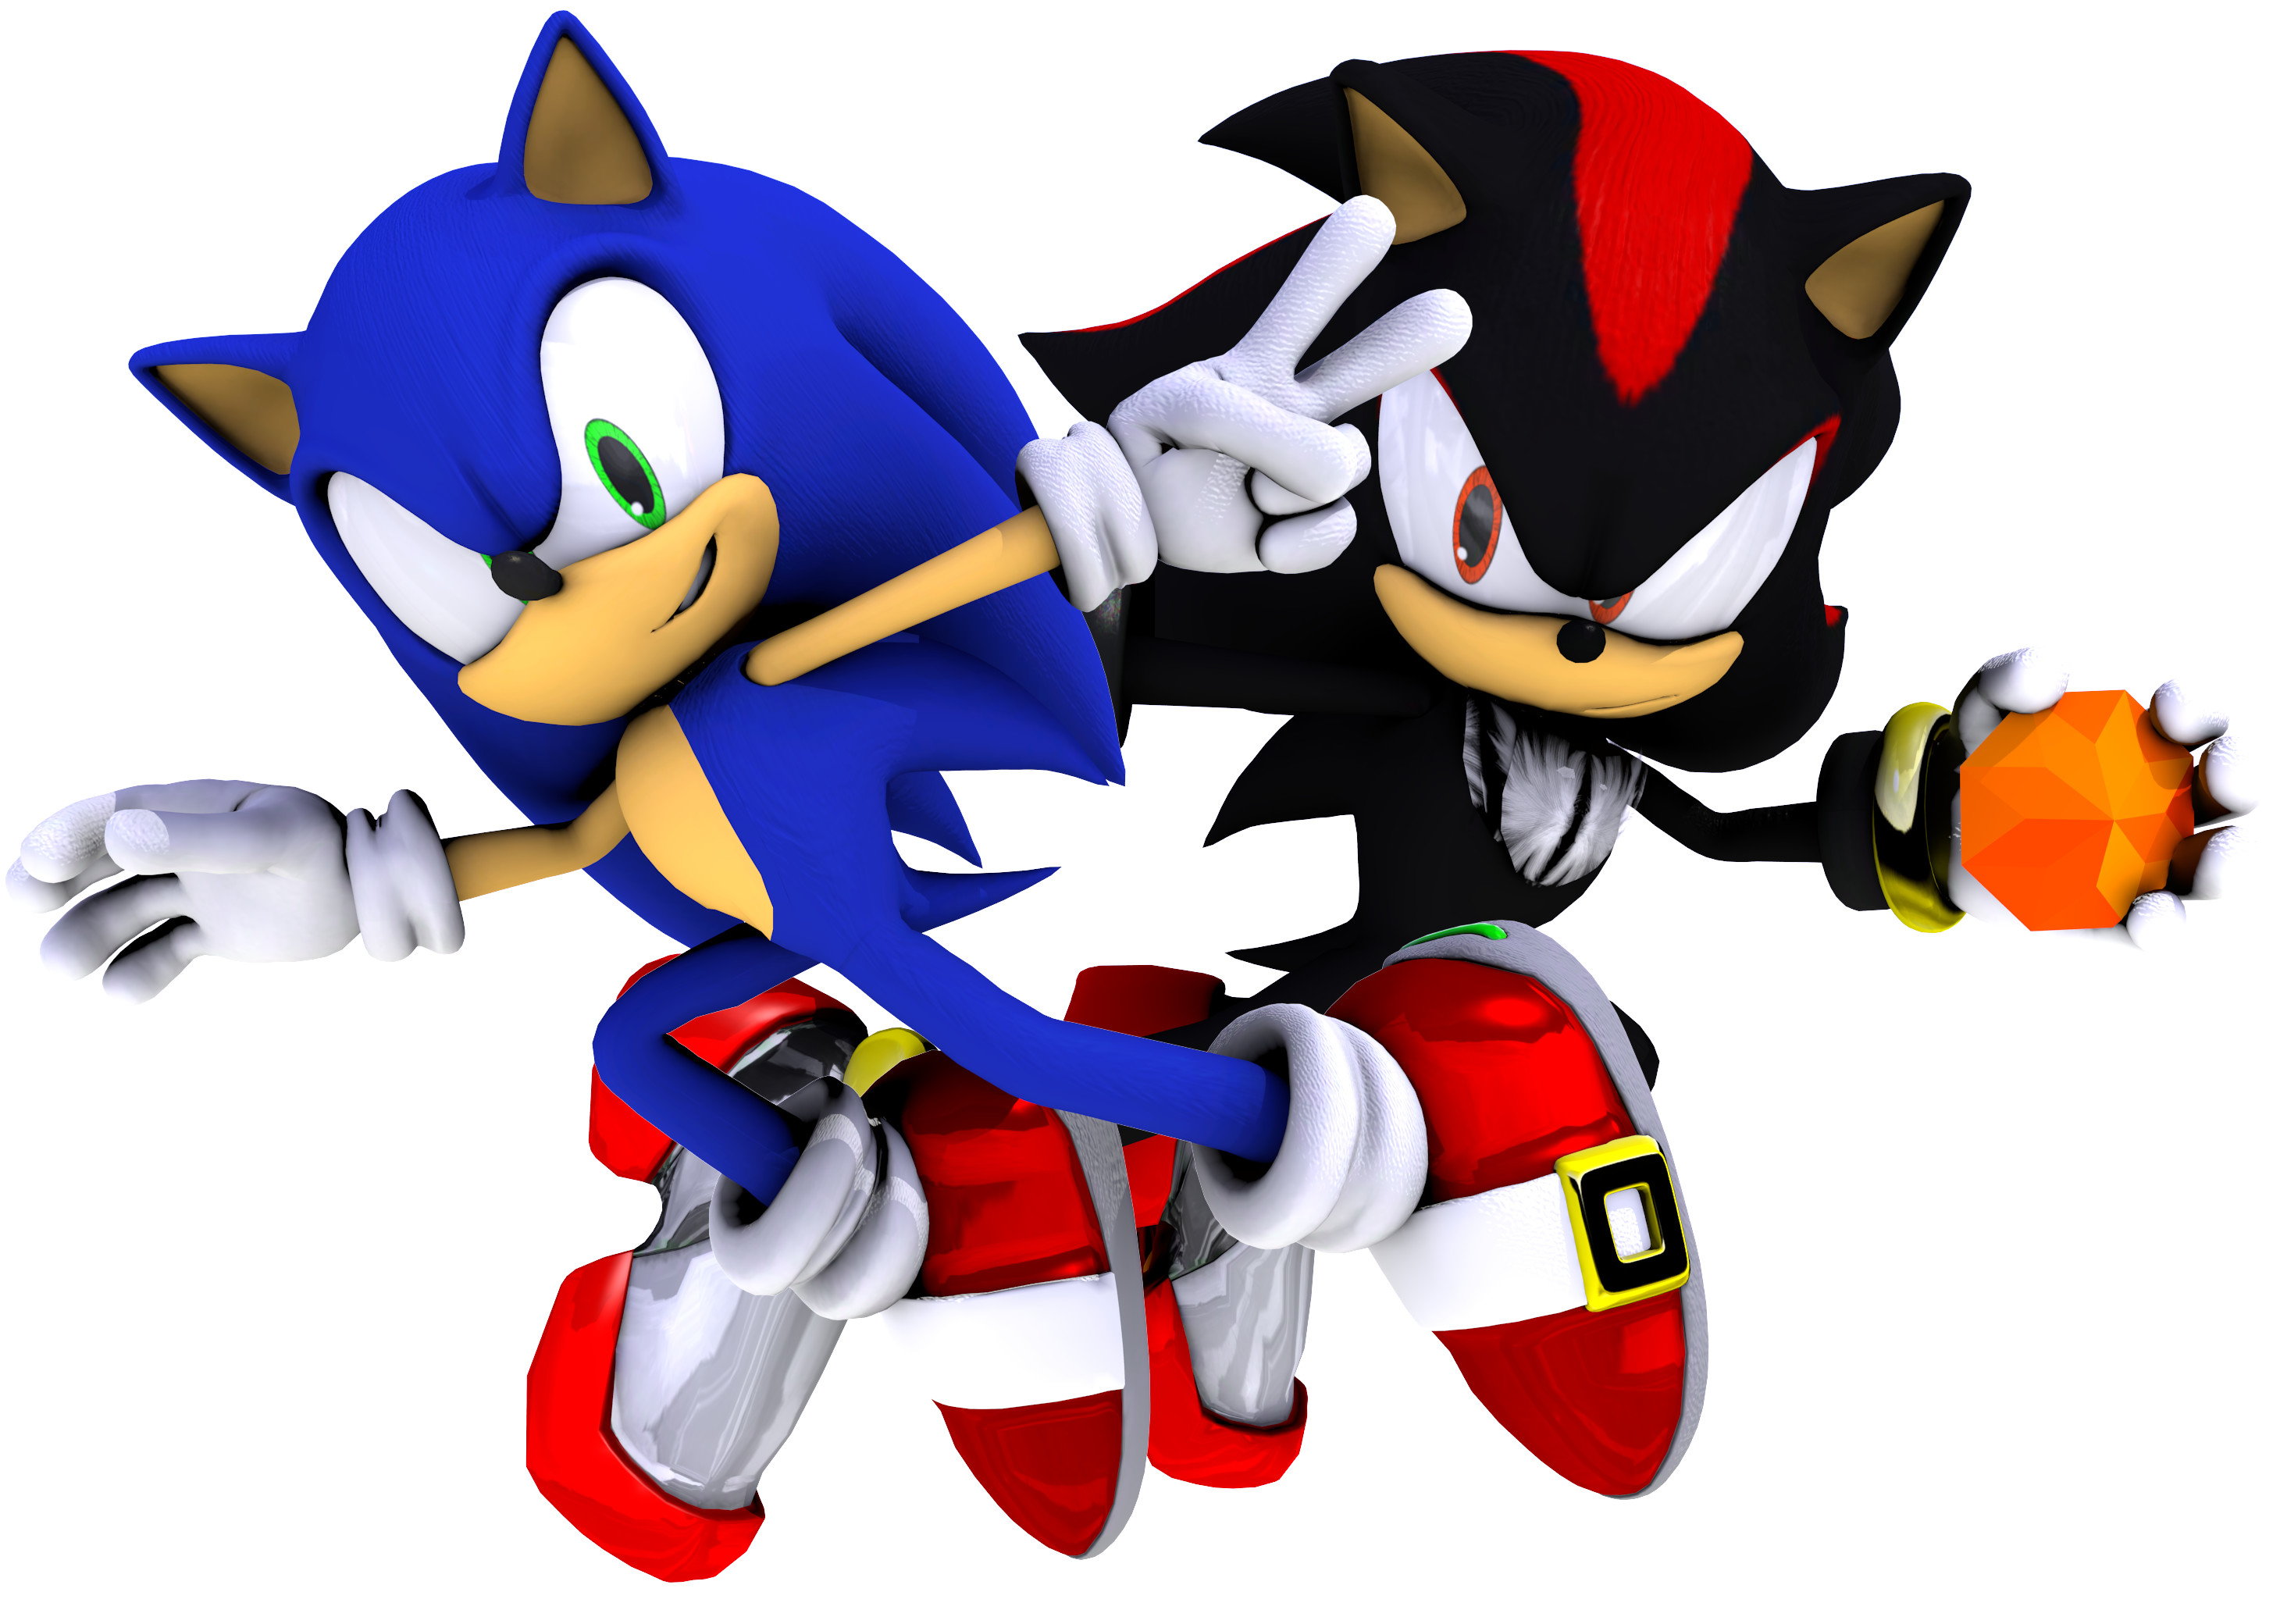 2920x2080 ... Sonic Adventure 2 Poses - my edit. by IceFoxesDX